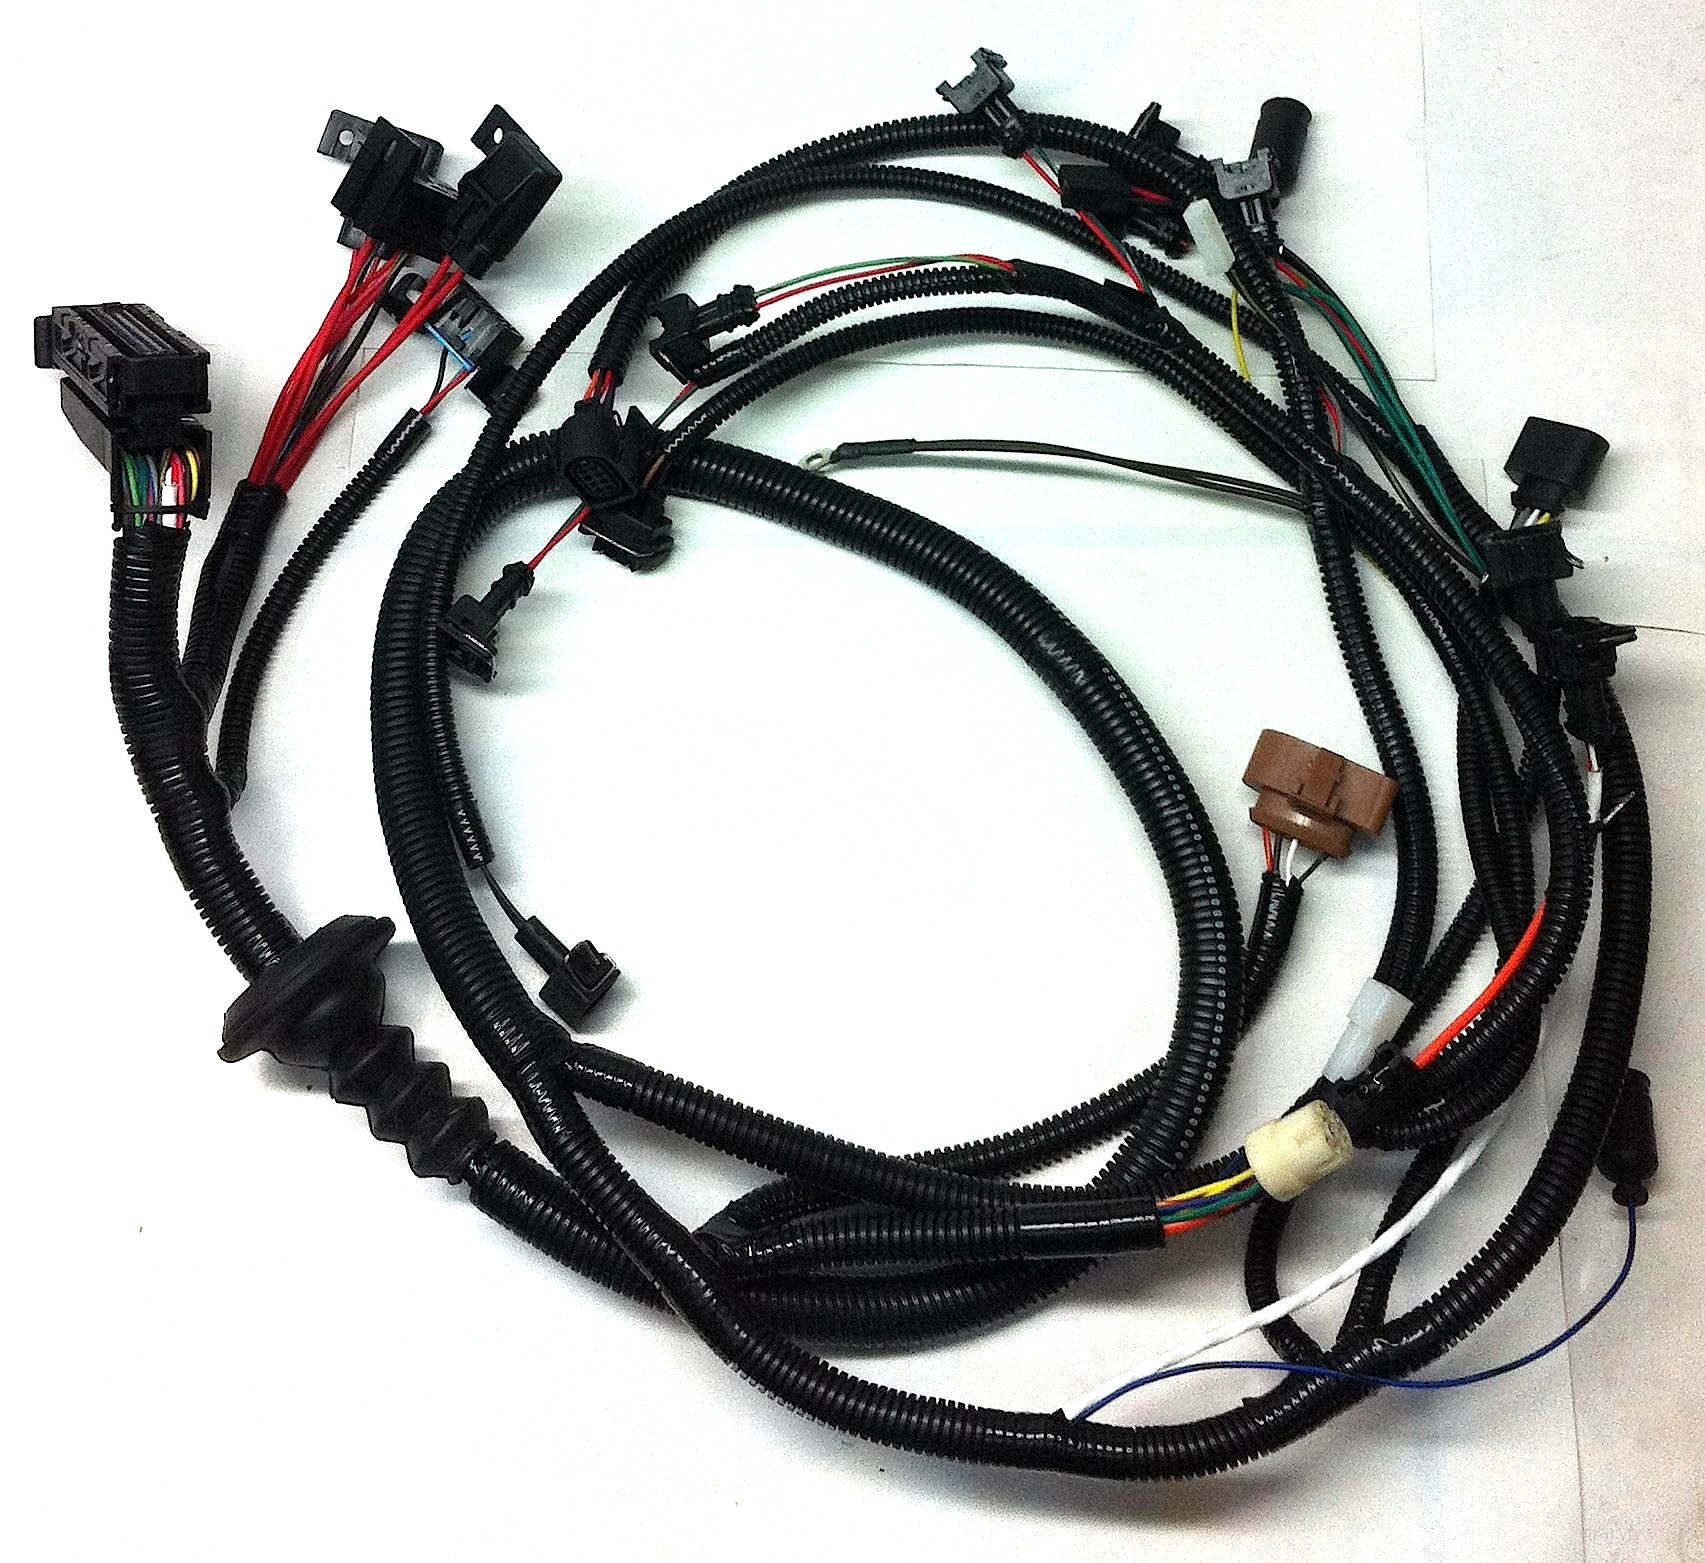 Wiring_Harness_2LR 2lr tiico conversion wiring harness foreign auto & supply, inc engine swap wiring harness at aneh.co